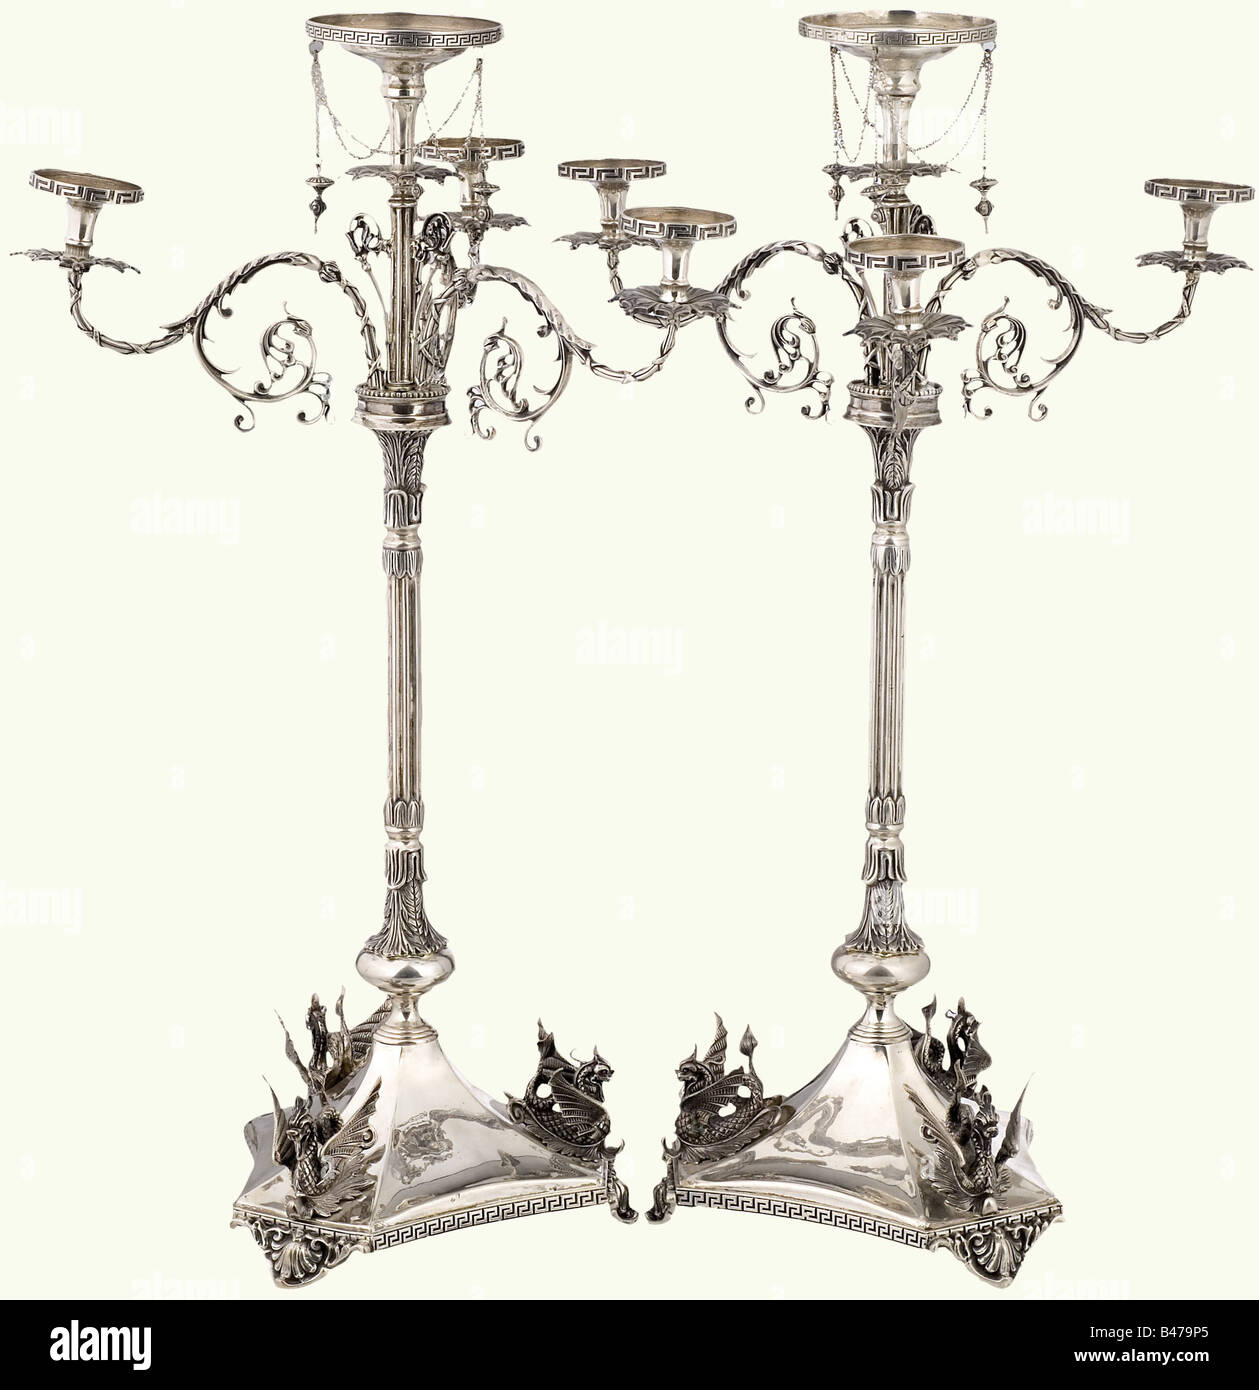 A pair of German ceremonial candelabras, end of the 19th century. Made in several pieces, with four candle holders, - Stock Image